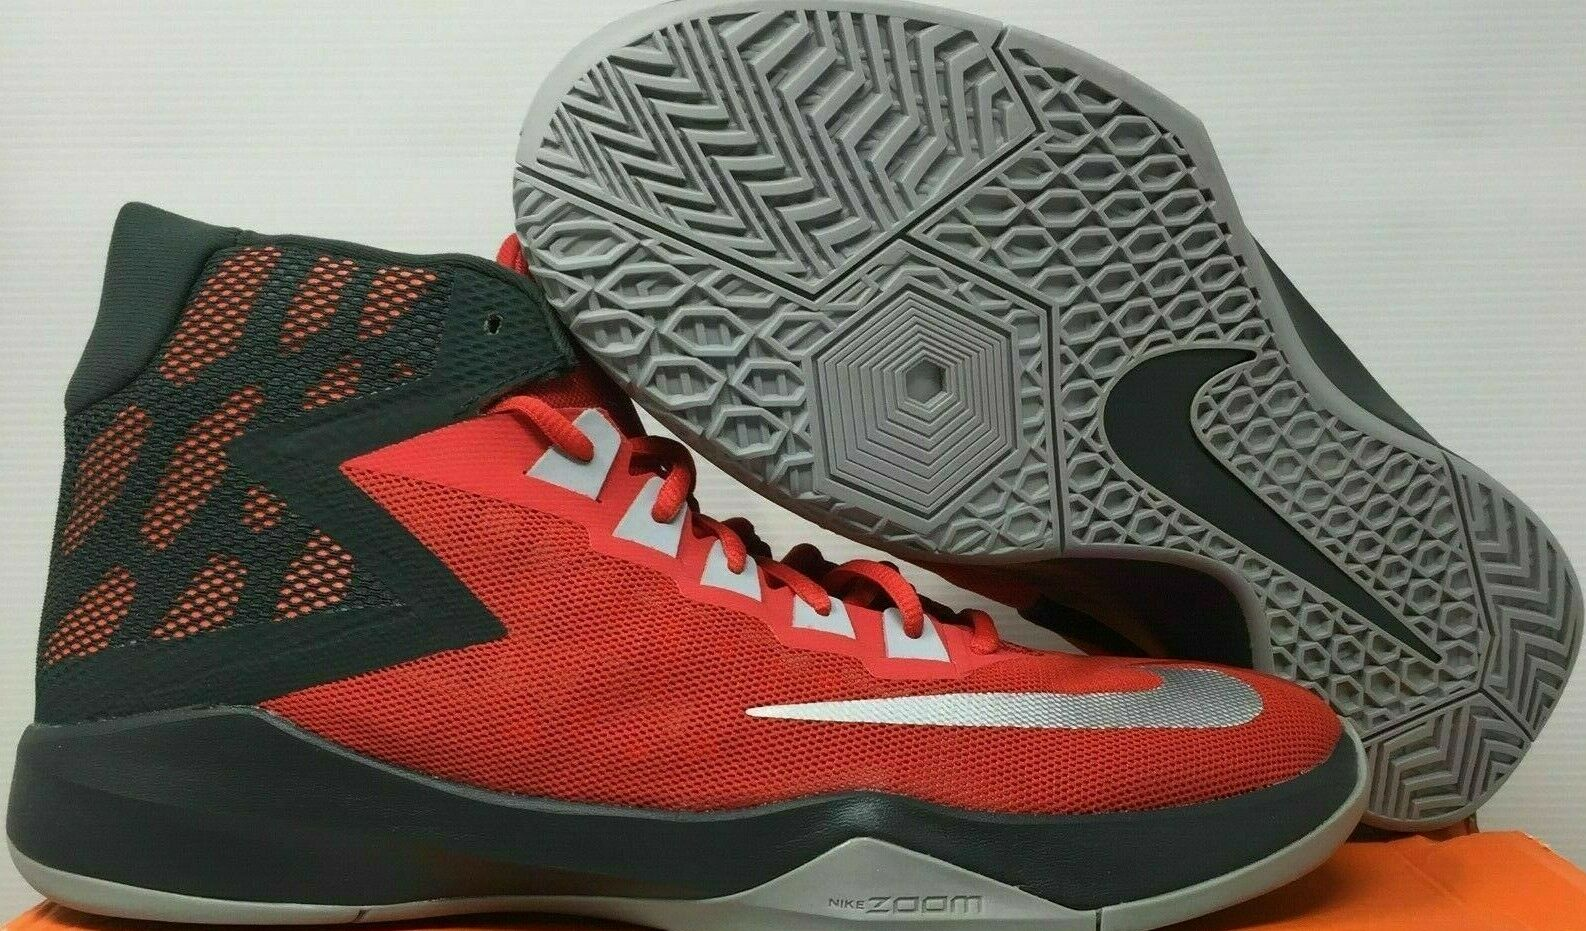 Nike Men's Zoom Devosion Red 844592-600 Basketball shoes Size 14  80